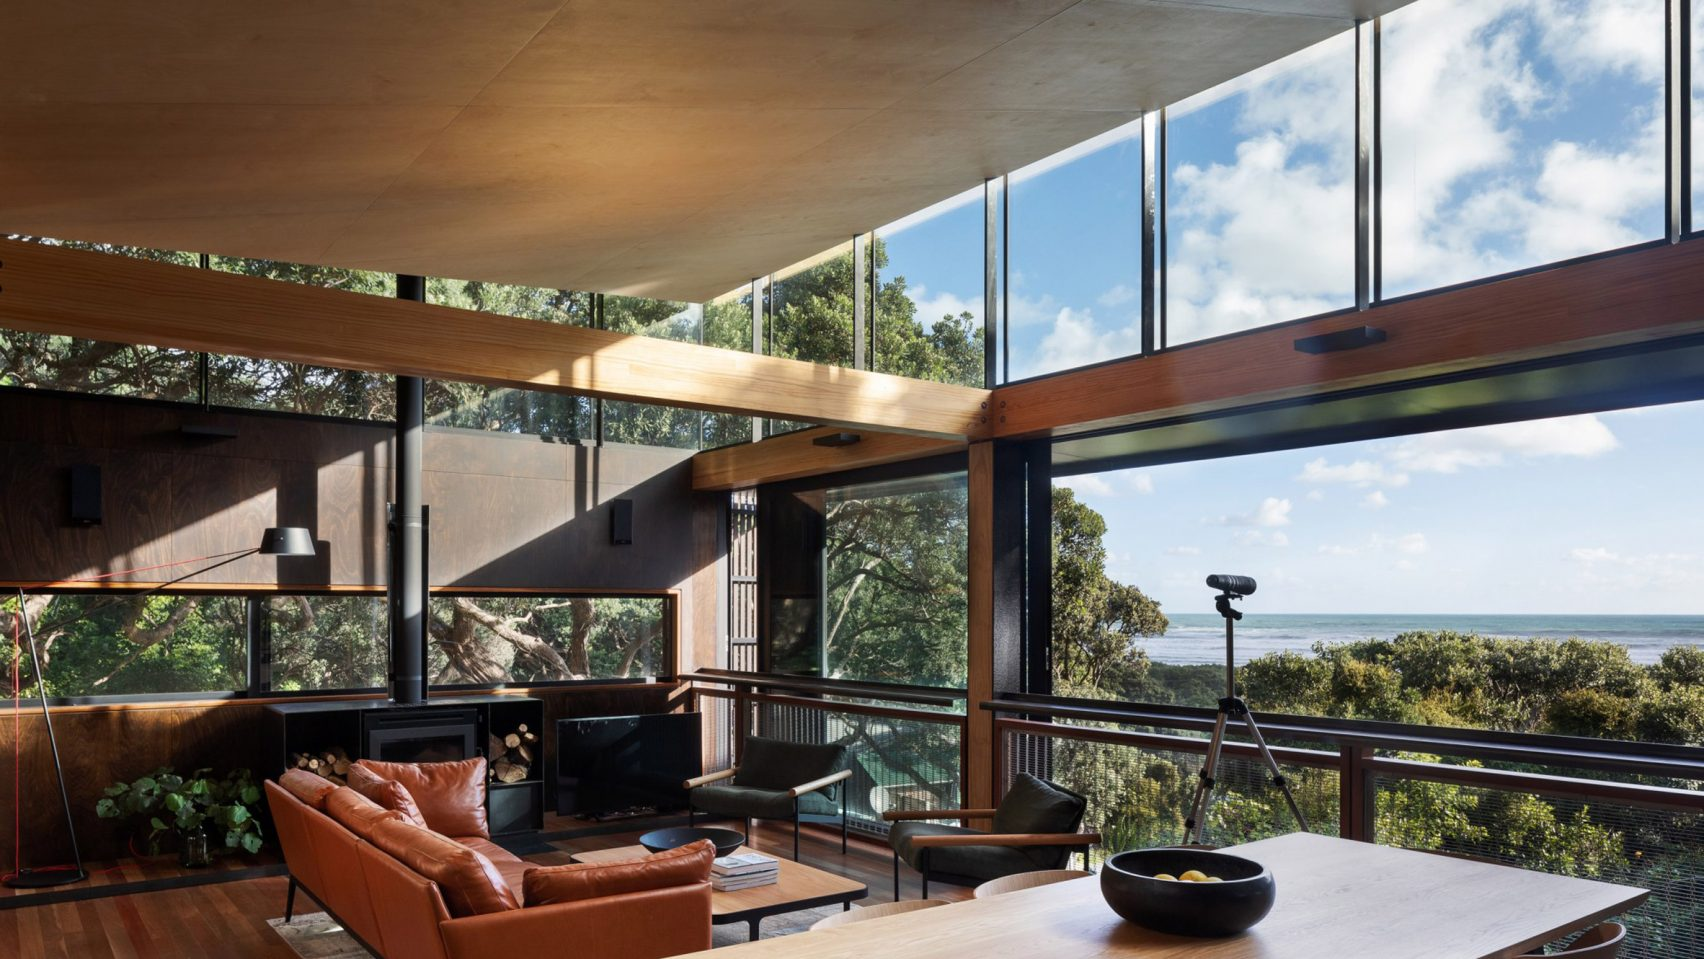 House with views to the sea surrounded by trees in New Zealand